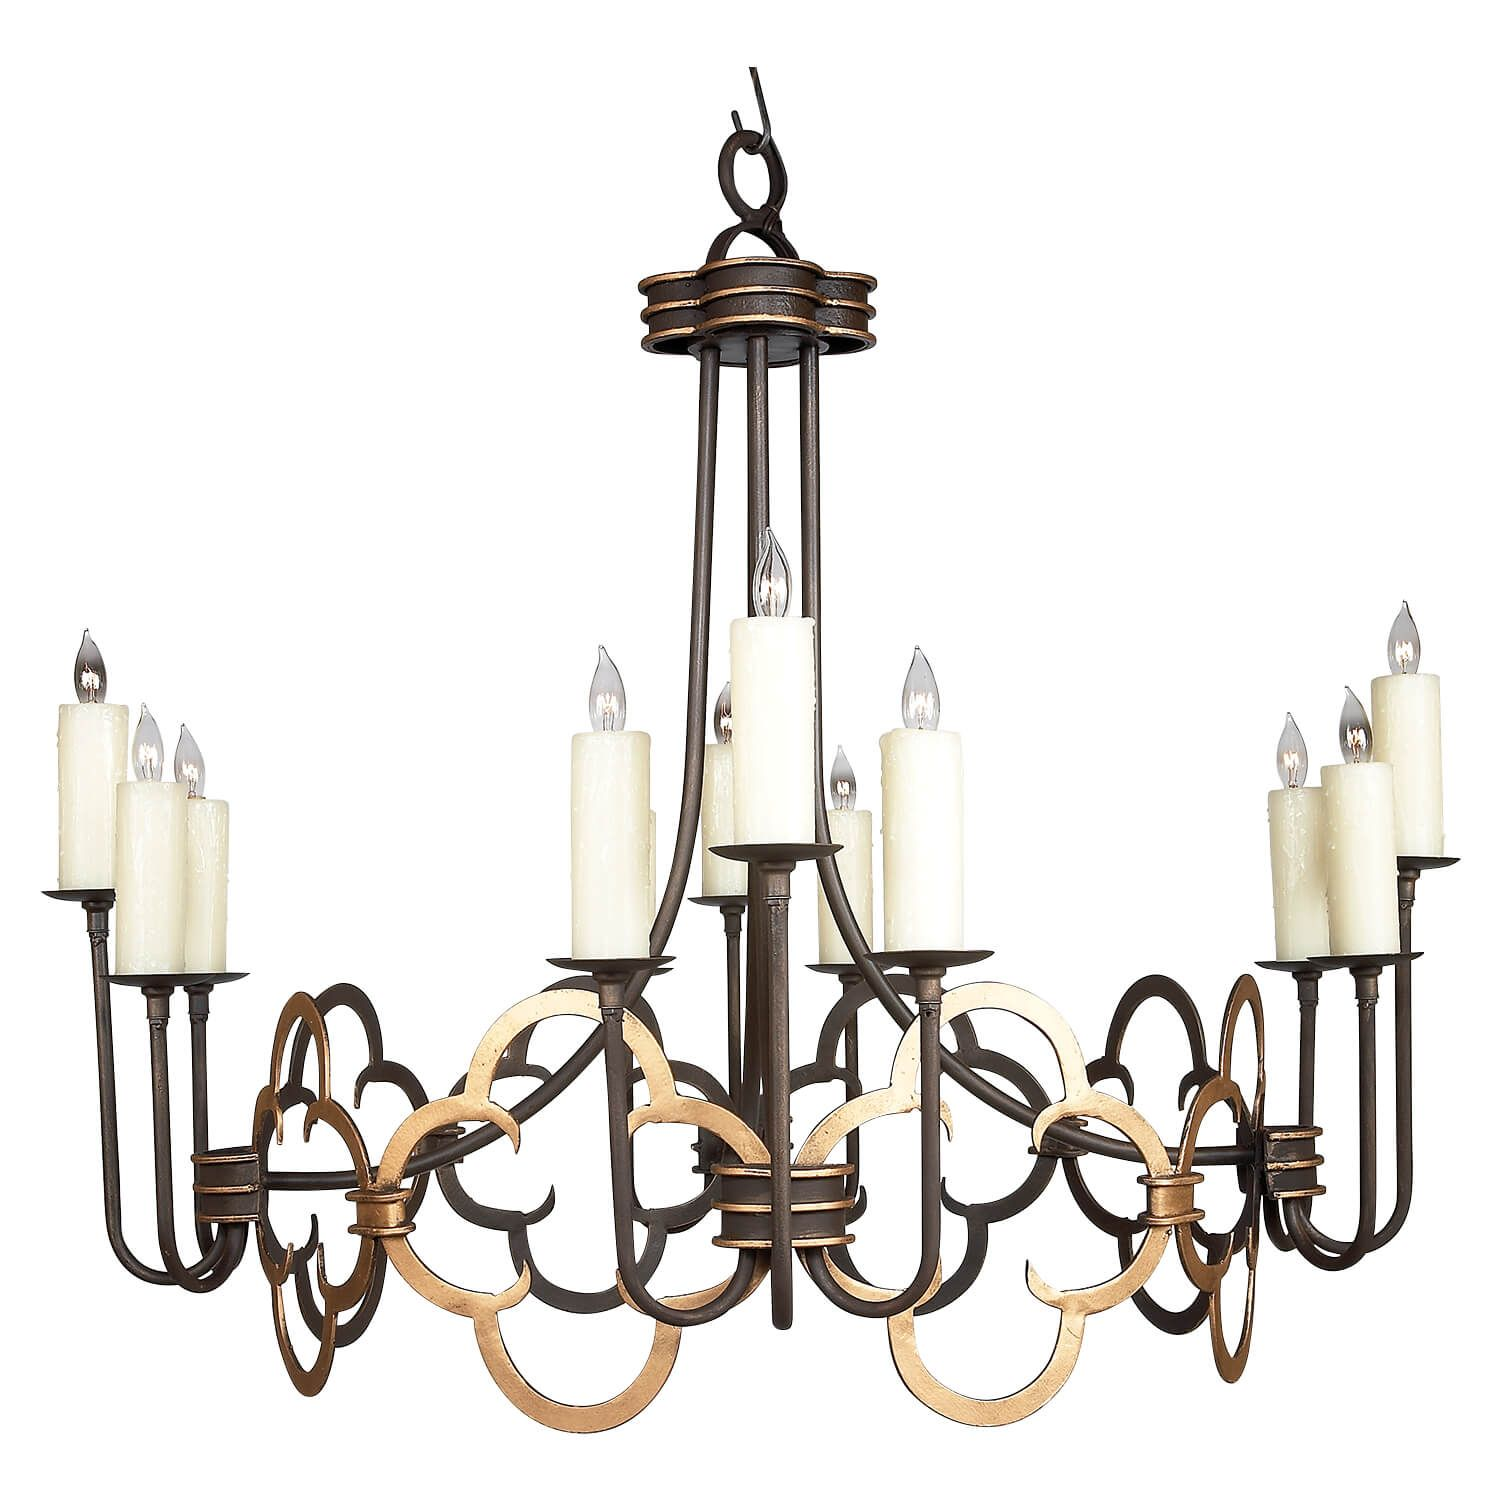 12 Light Fancy Nancy Iron Chandeliers Modern Chandelier